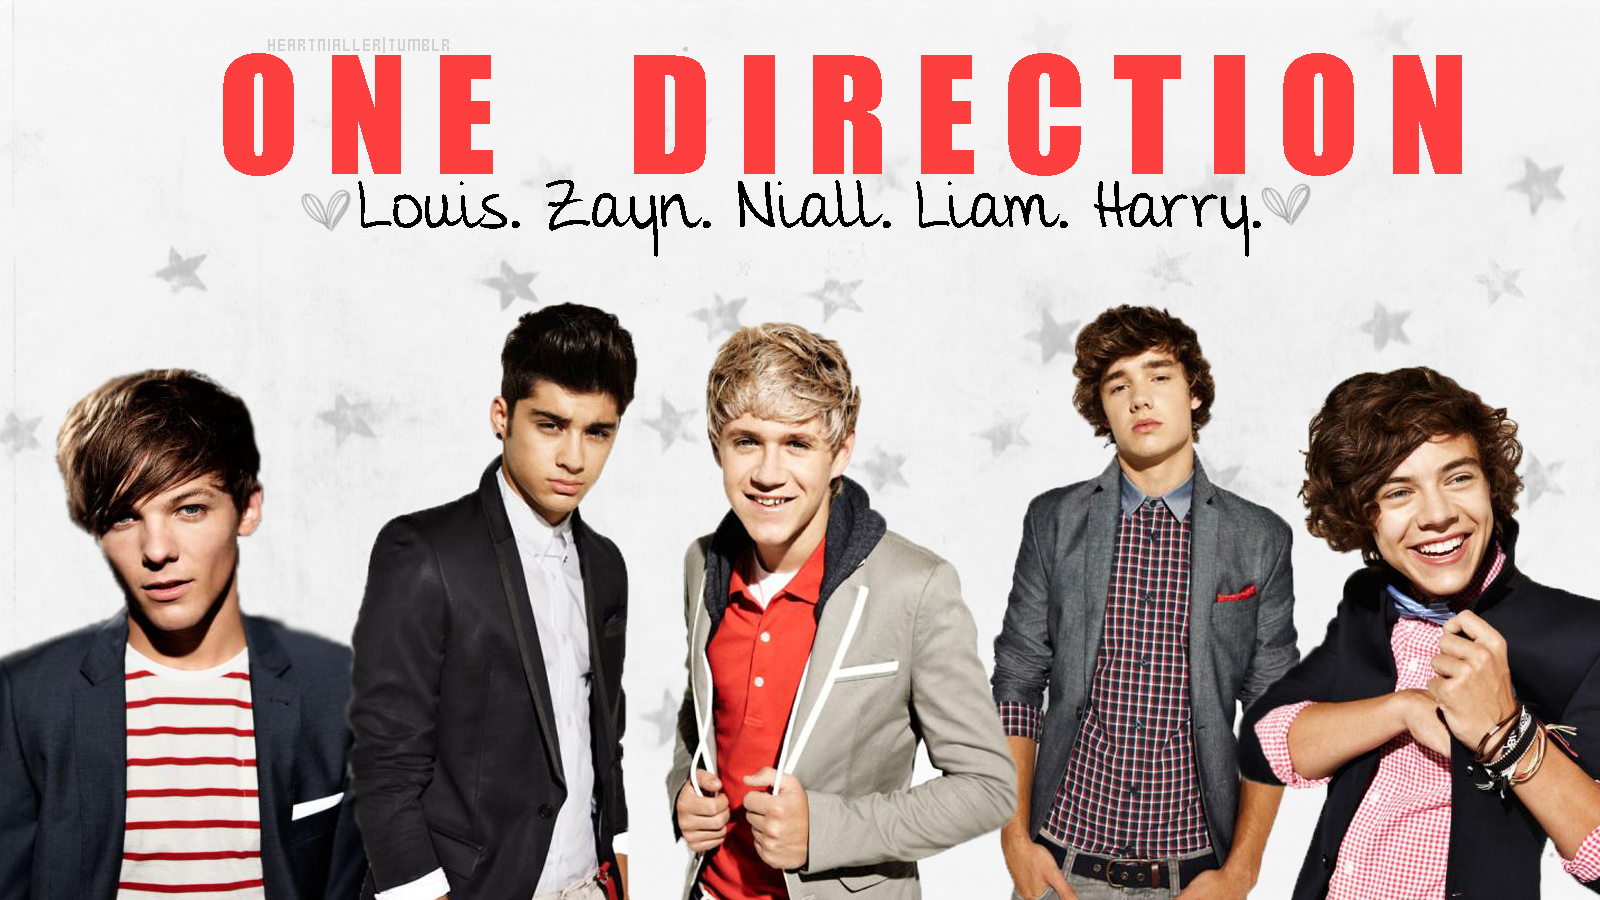 One Direction HD Wallpapers 2013 for Desktop and Iphone 1600x900